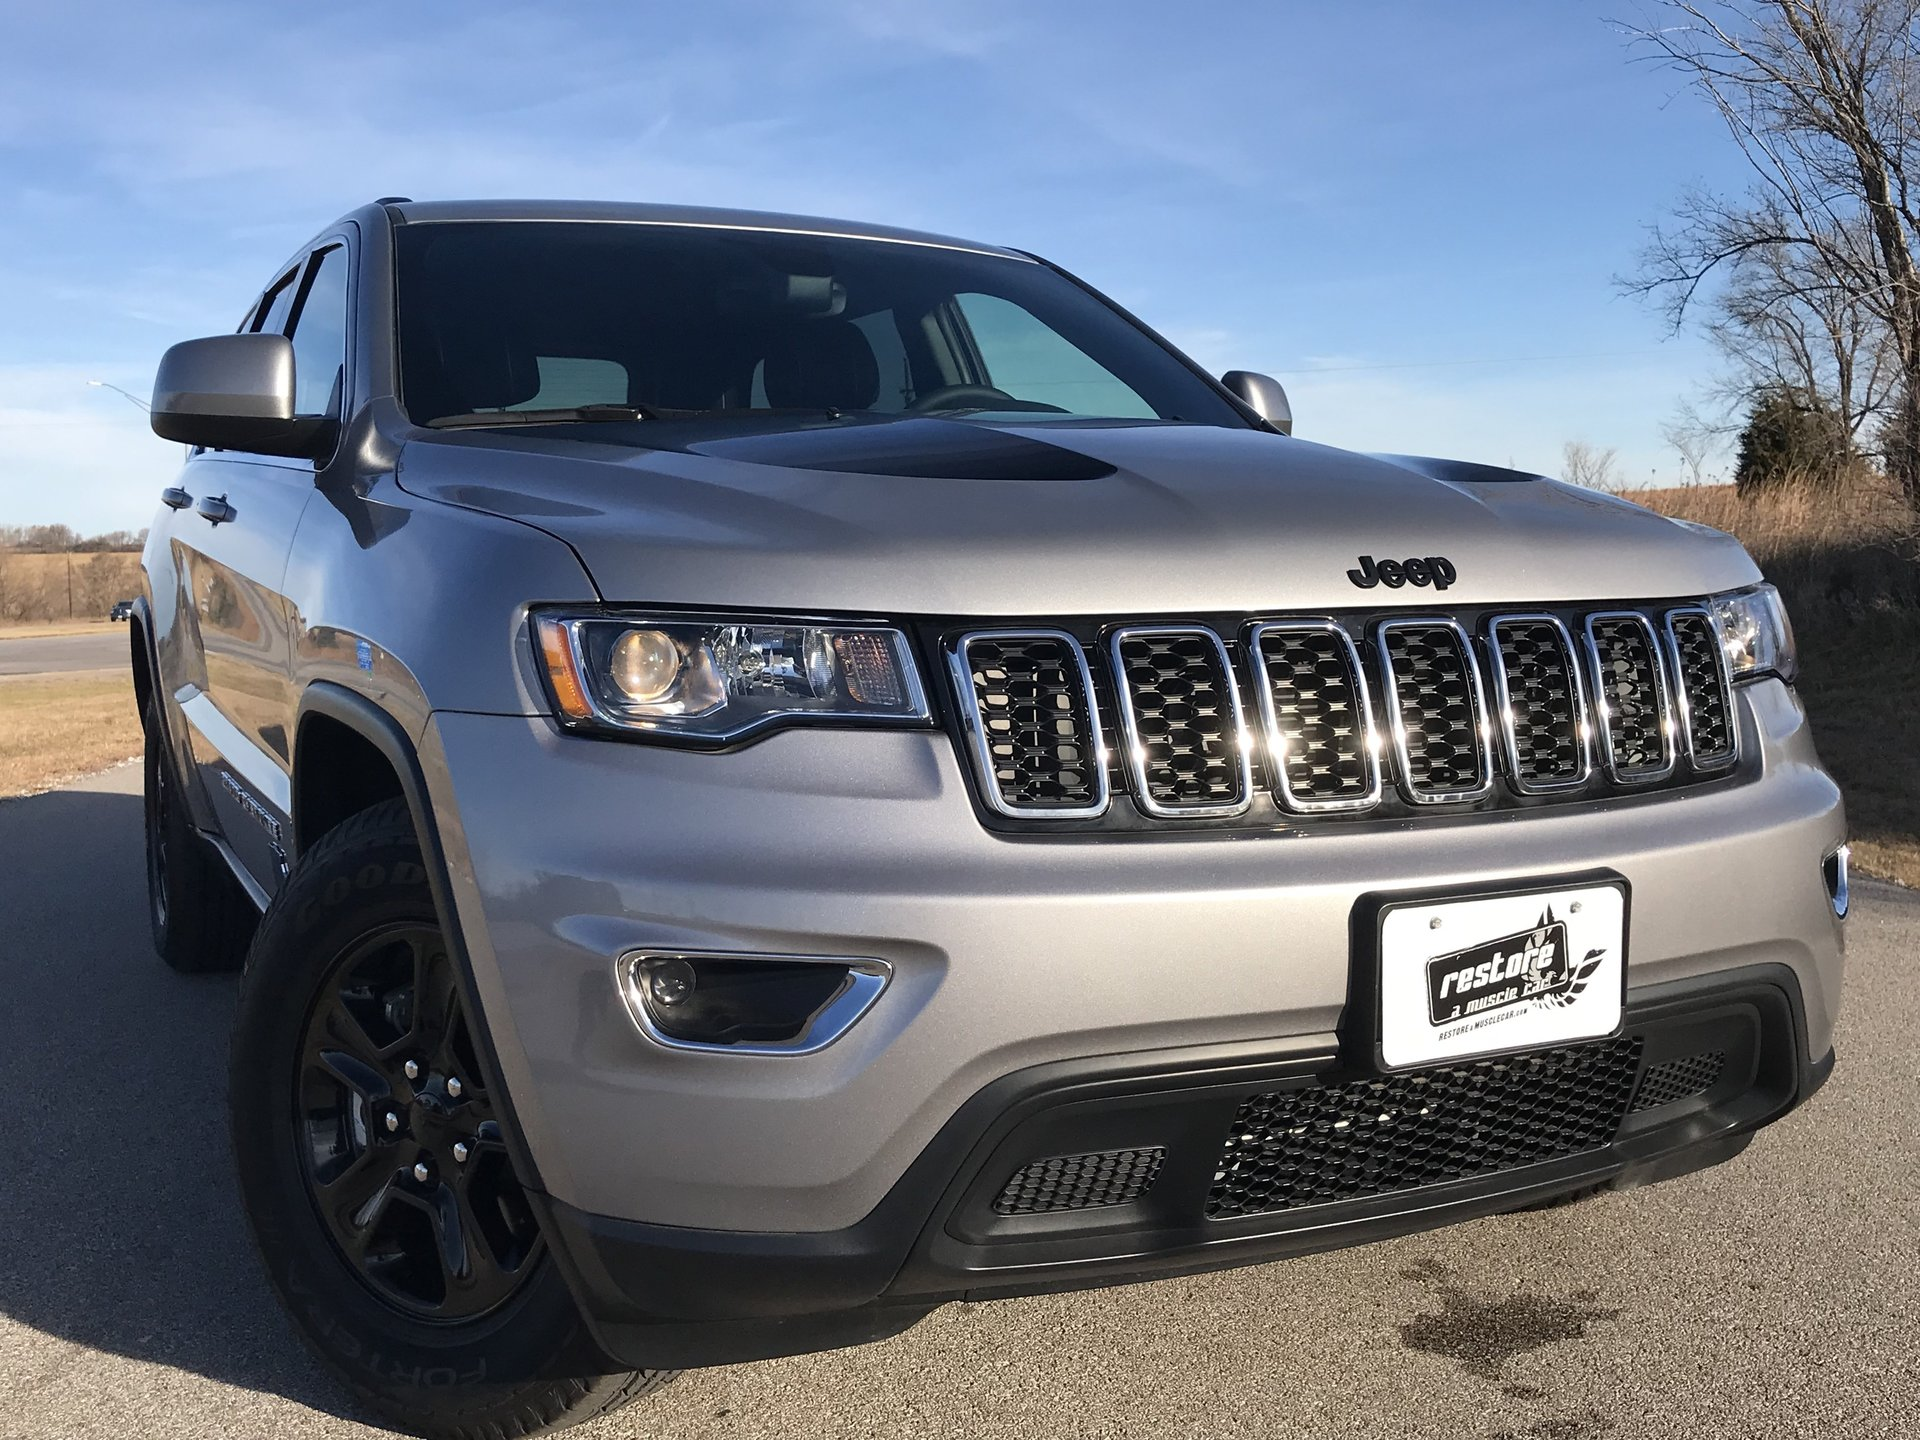 2017 jeep grand cherokee laredo for sale 74216 mcg. Black Bedroom Furniture Sets. Home Design Ideas